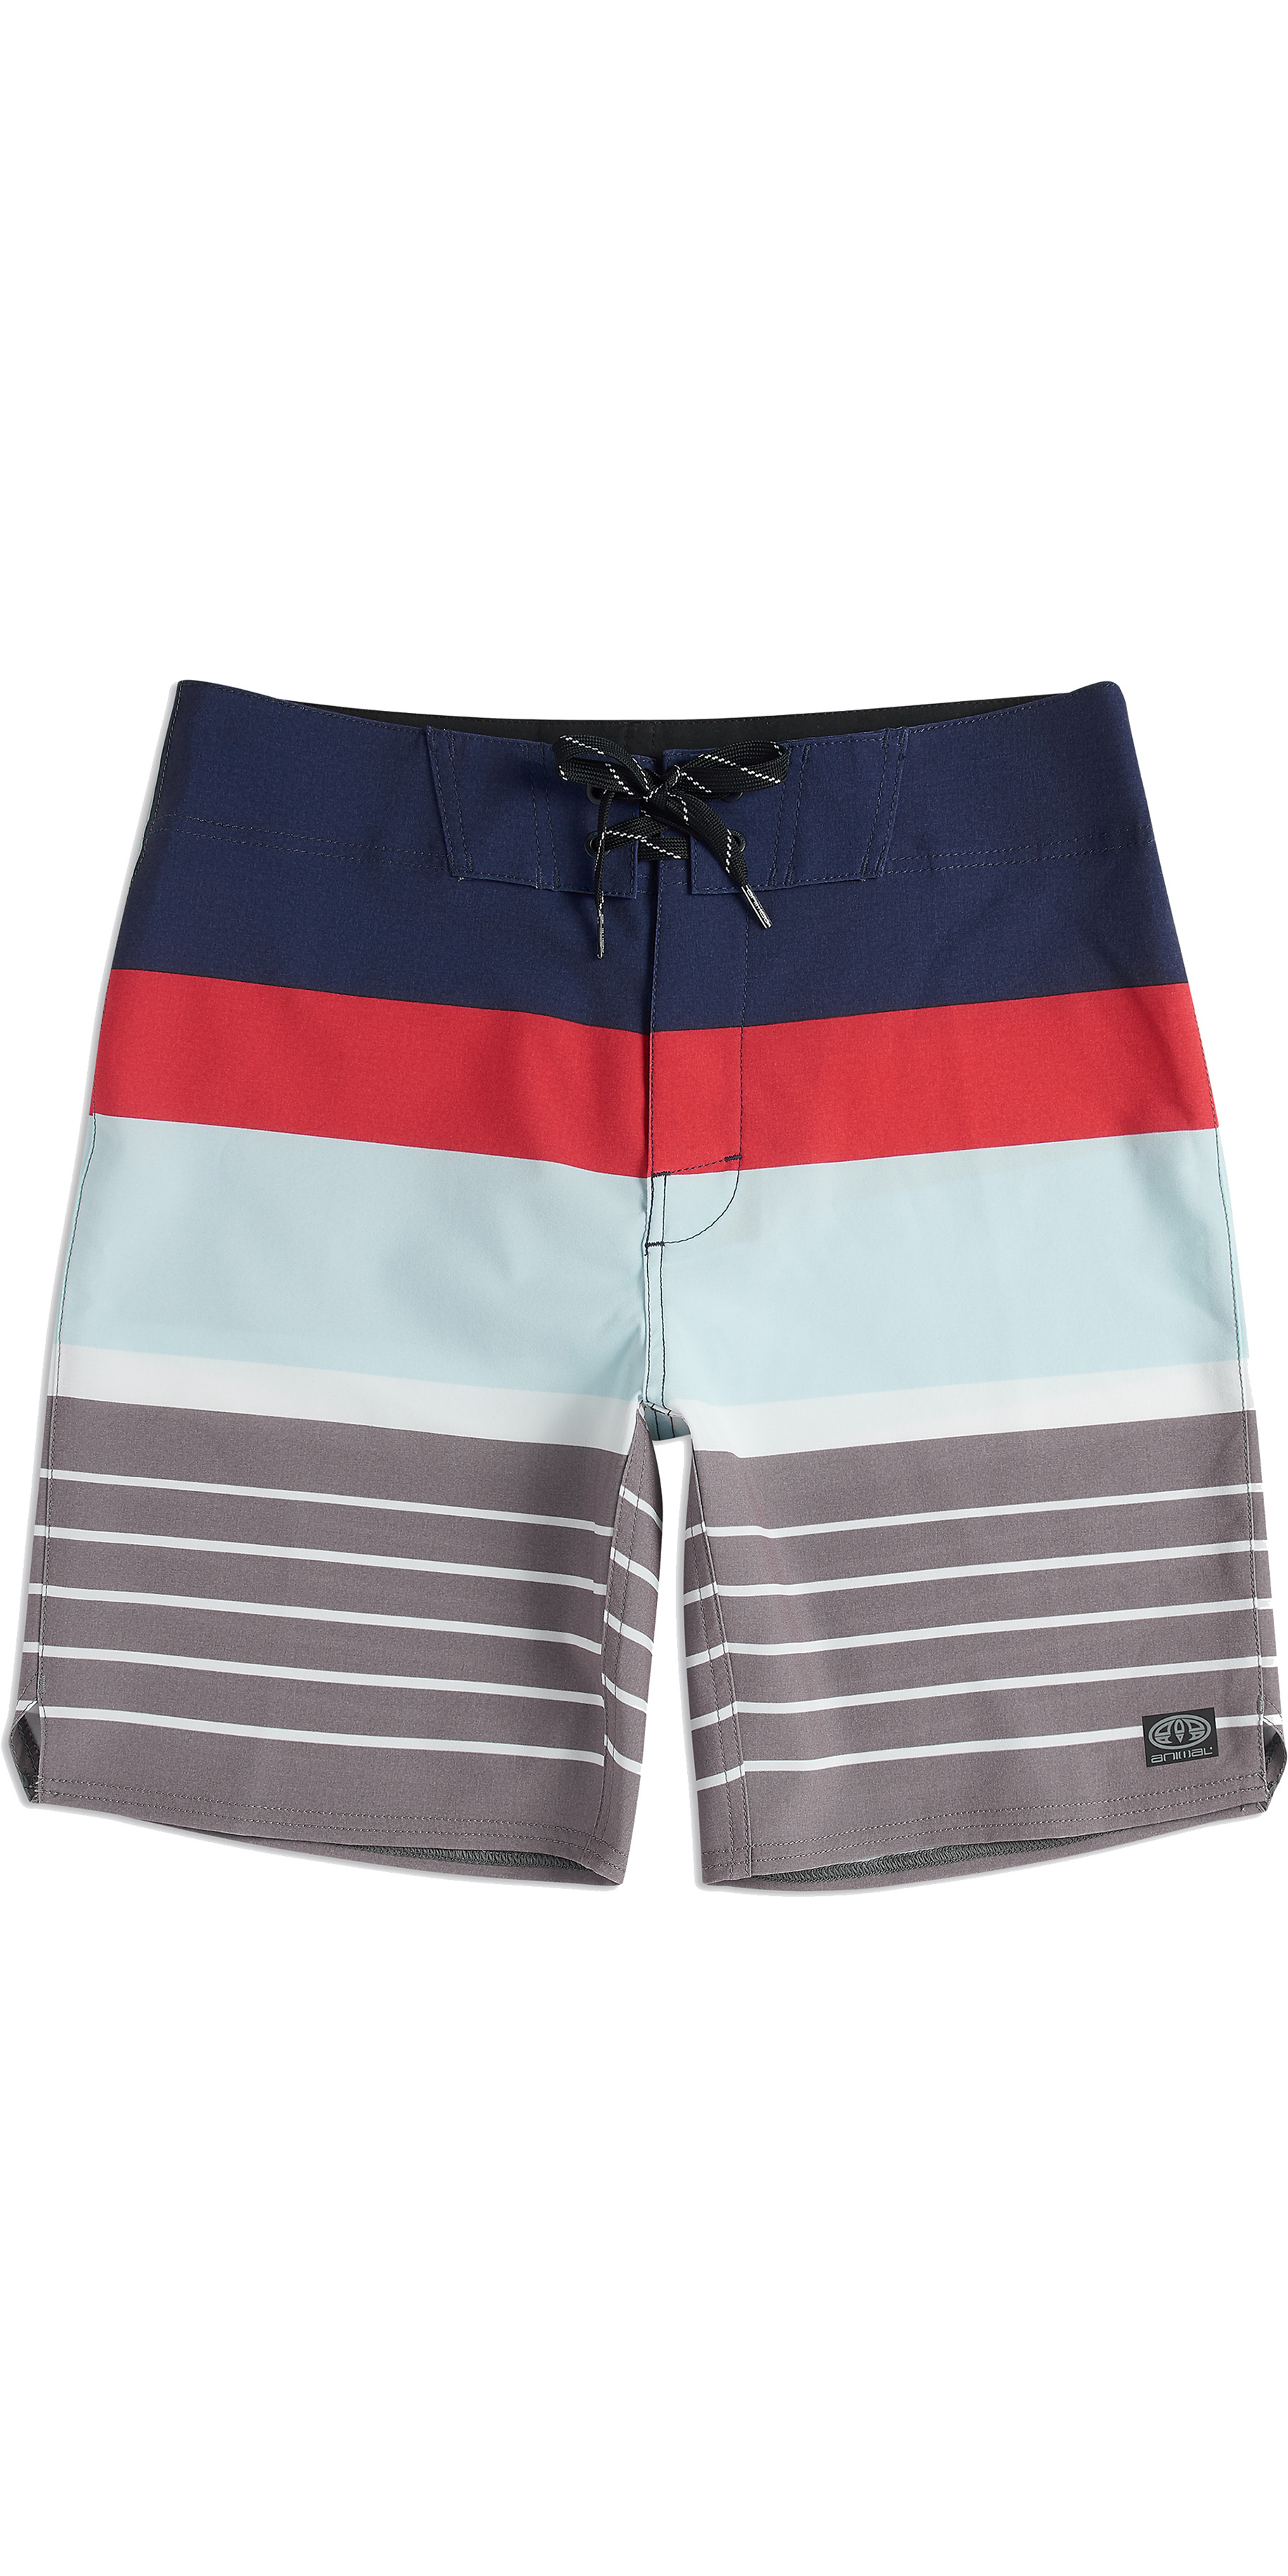 a55540b75c 2019 Animal Mens Tarley Board Shorts Stripes Cl9sq009 - Boardshorts - Shorts  - Mens | Wetsuit Outlet